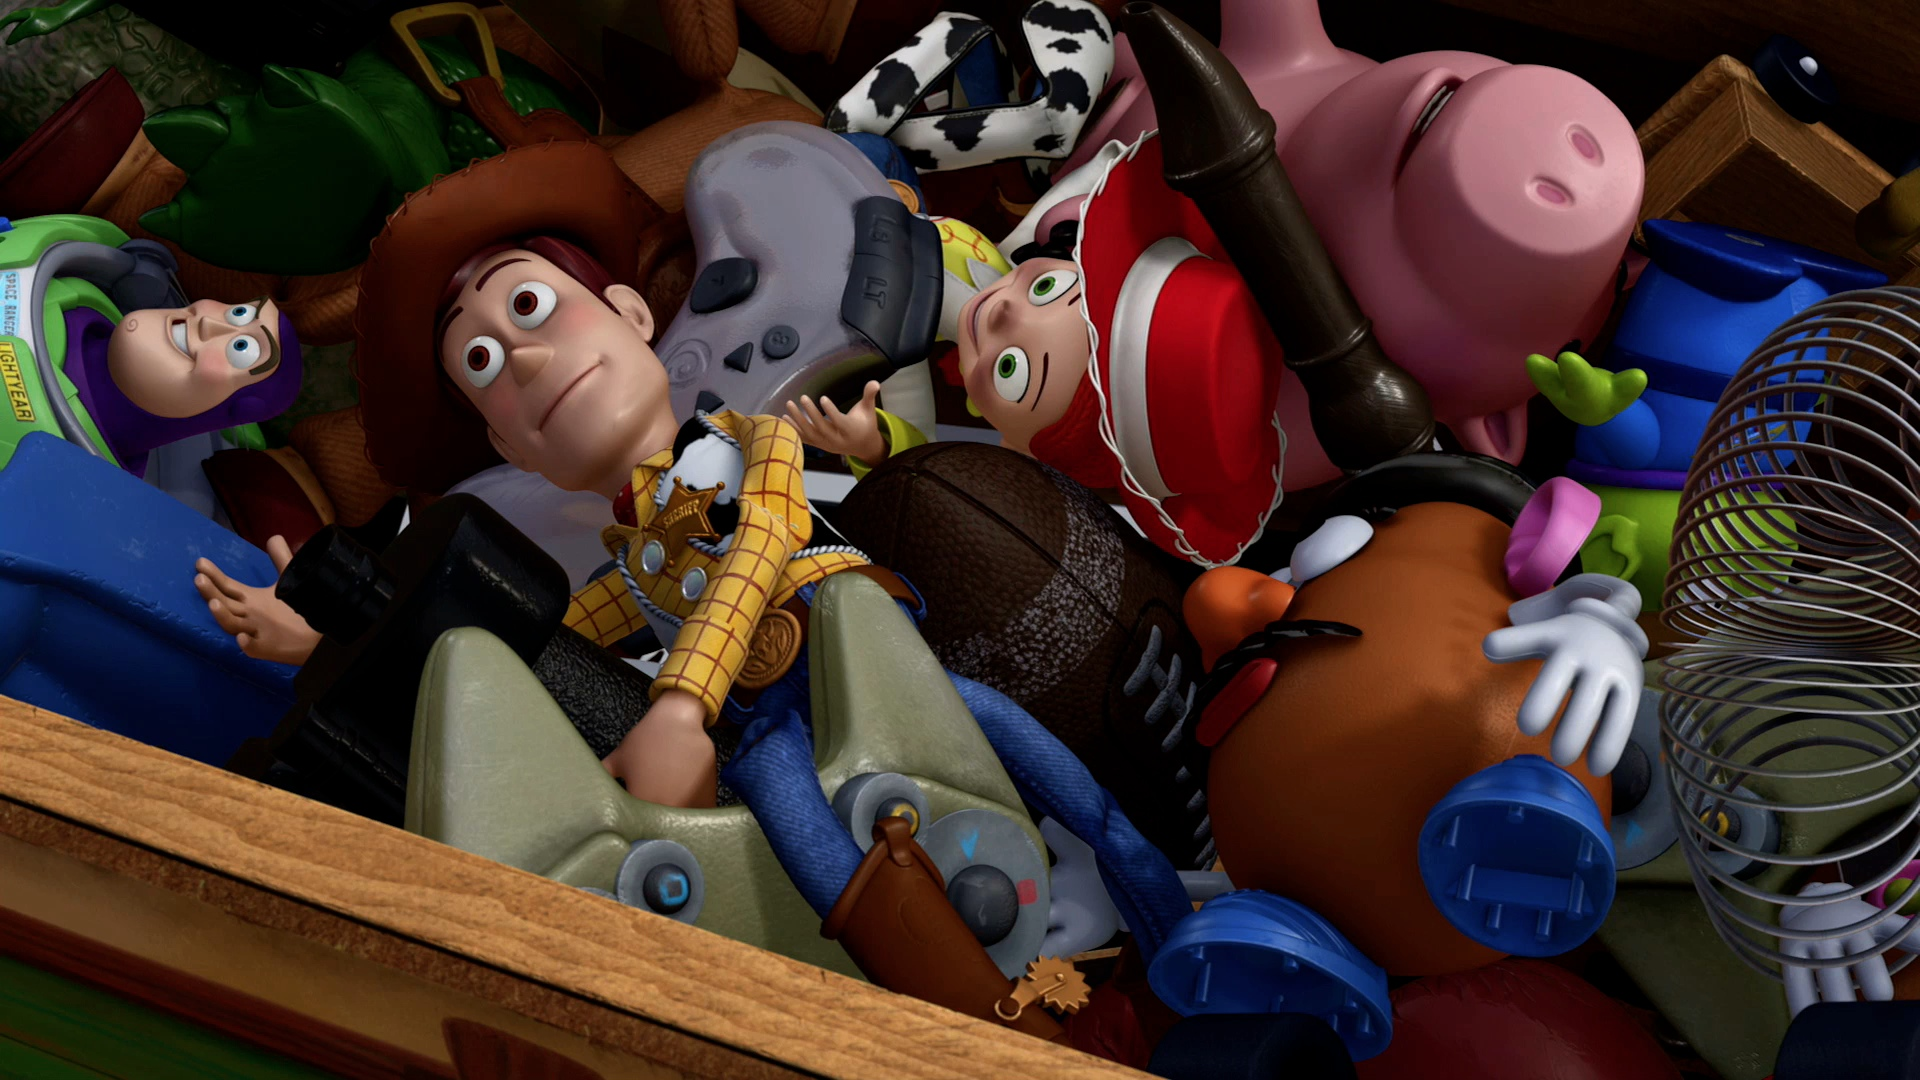 Toy Story Wallpaper Iphone 5 Toy Story Full Hd Wallpaper And Background Image